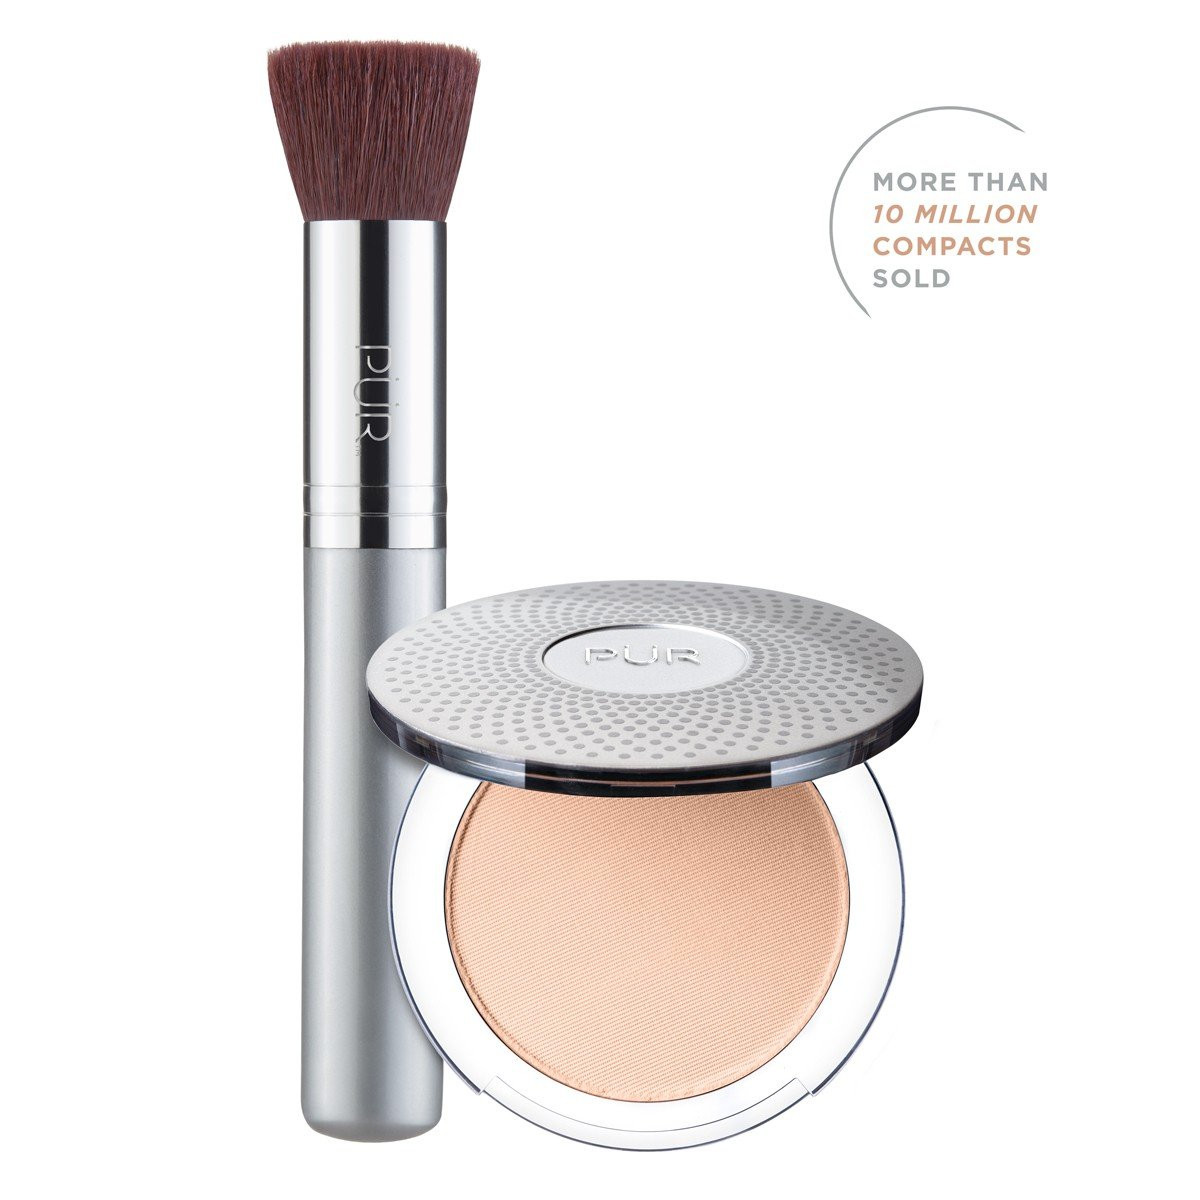 TRY PÜR! 4-in-1 Pressed Mineral Makeup and Brush Kit in Light